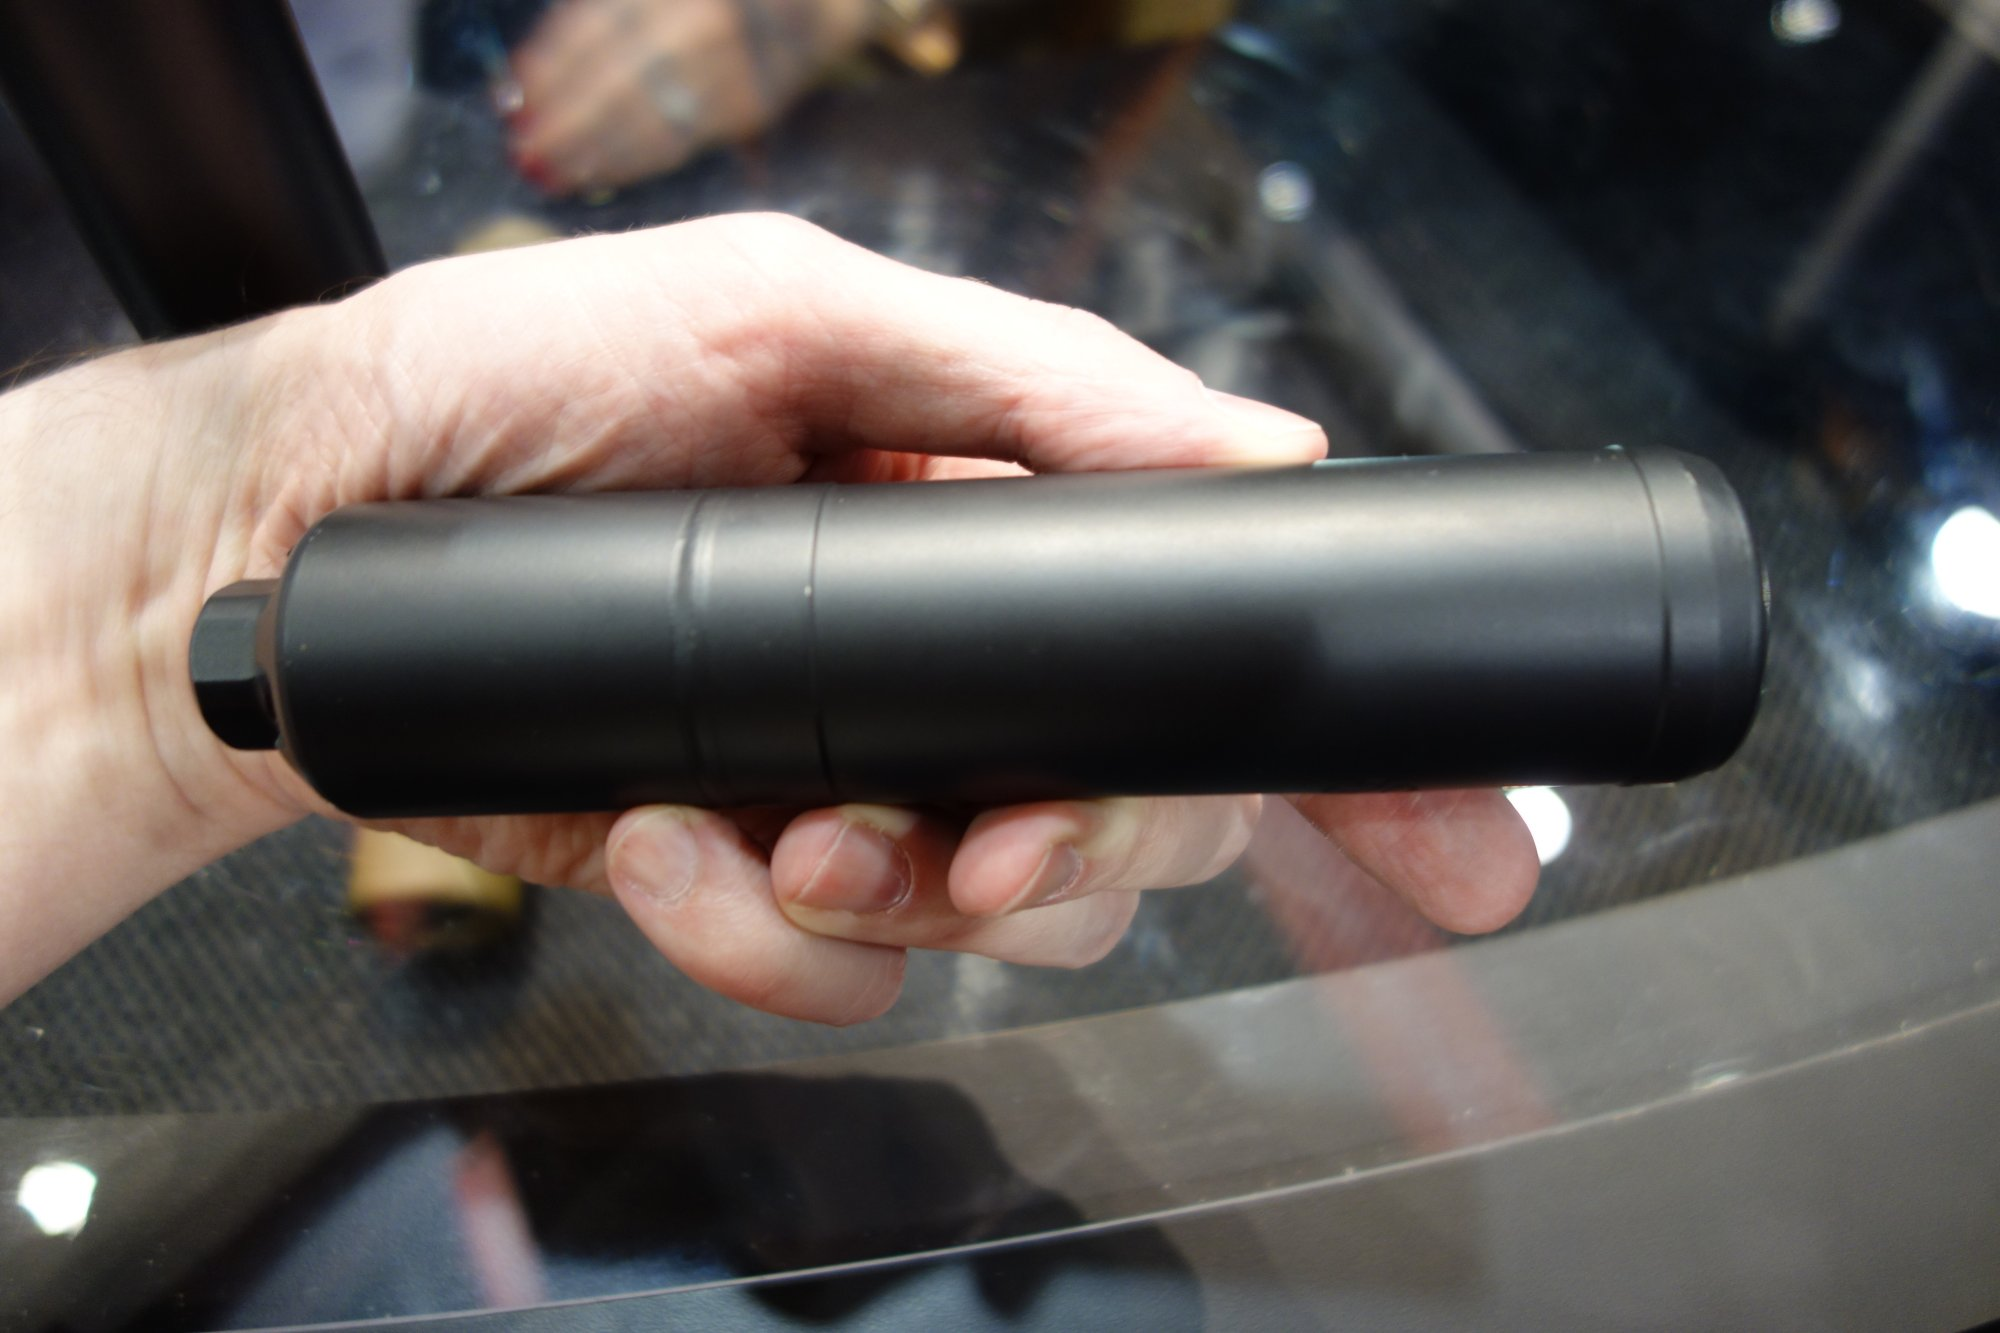 Advanced Armament Corp. AAC Ranger 3 5.56mm Direct Thread Mount Silencer Sound Suppressor Muzzle Can Demo Mike Mers SHOT Show 2014 David Crane DefenseReview.com DR 1 Latest and Greatest AAC Fast Attach Muzzle Cans (Silencers/Sound Suppressors) and 90 Tooth Mounting System: SR 5/SR 7, AAC 762 SDN 6, AAC 556 SD/762 SD, 90 Tooth BLACKOUT Flash Hider/Suppressor Mount, and AAC Ranger 3 Direct Thread Screw On Can (Video!)